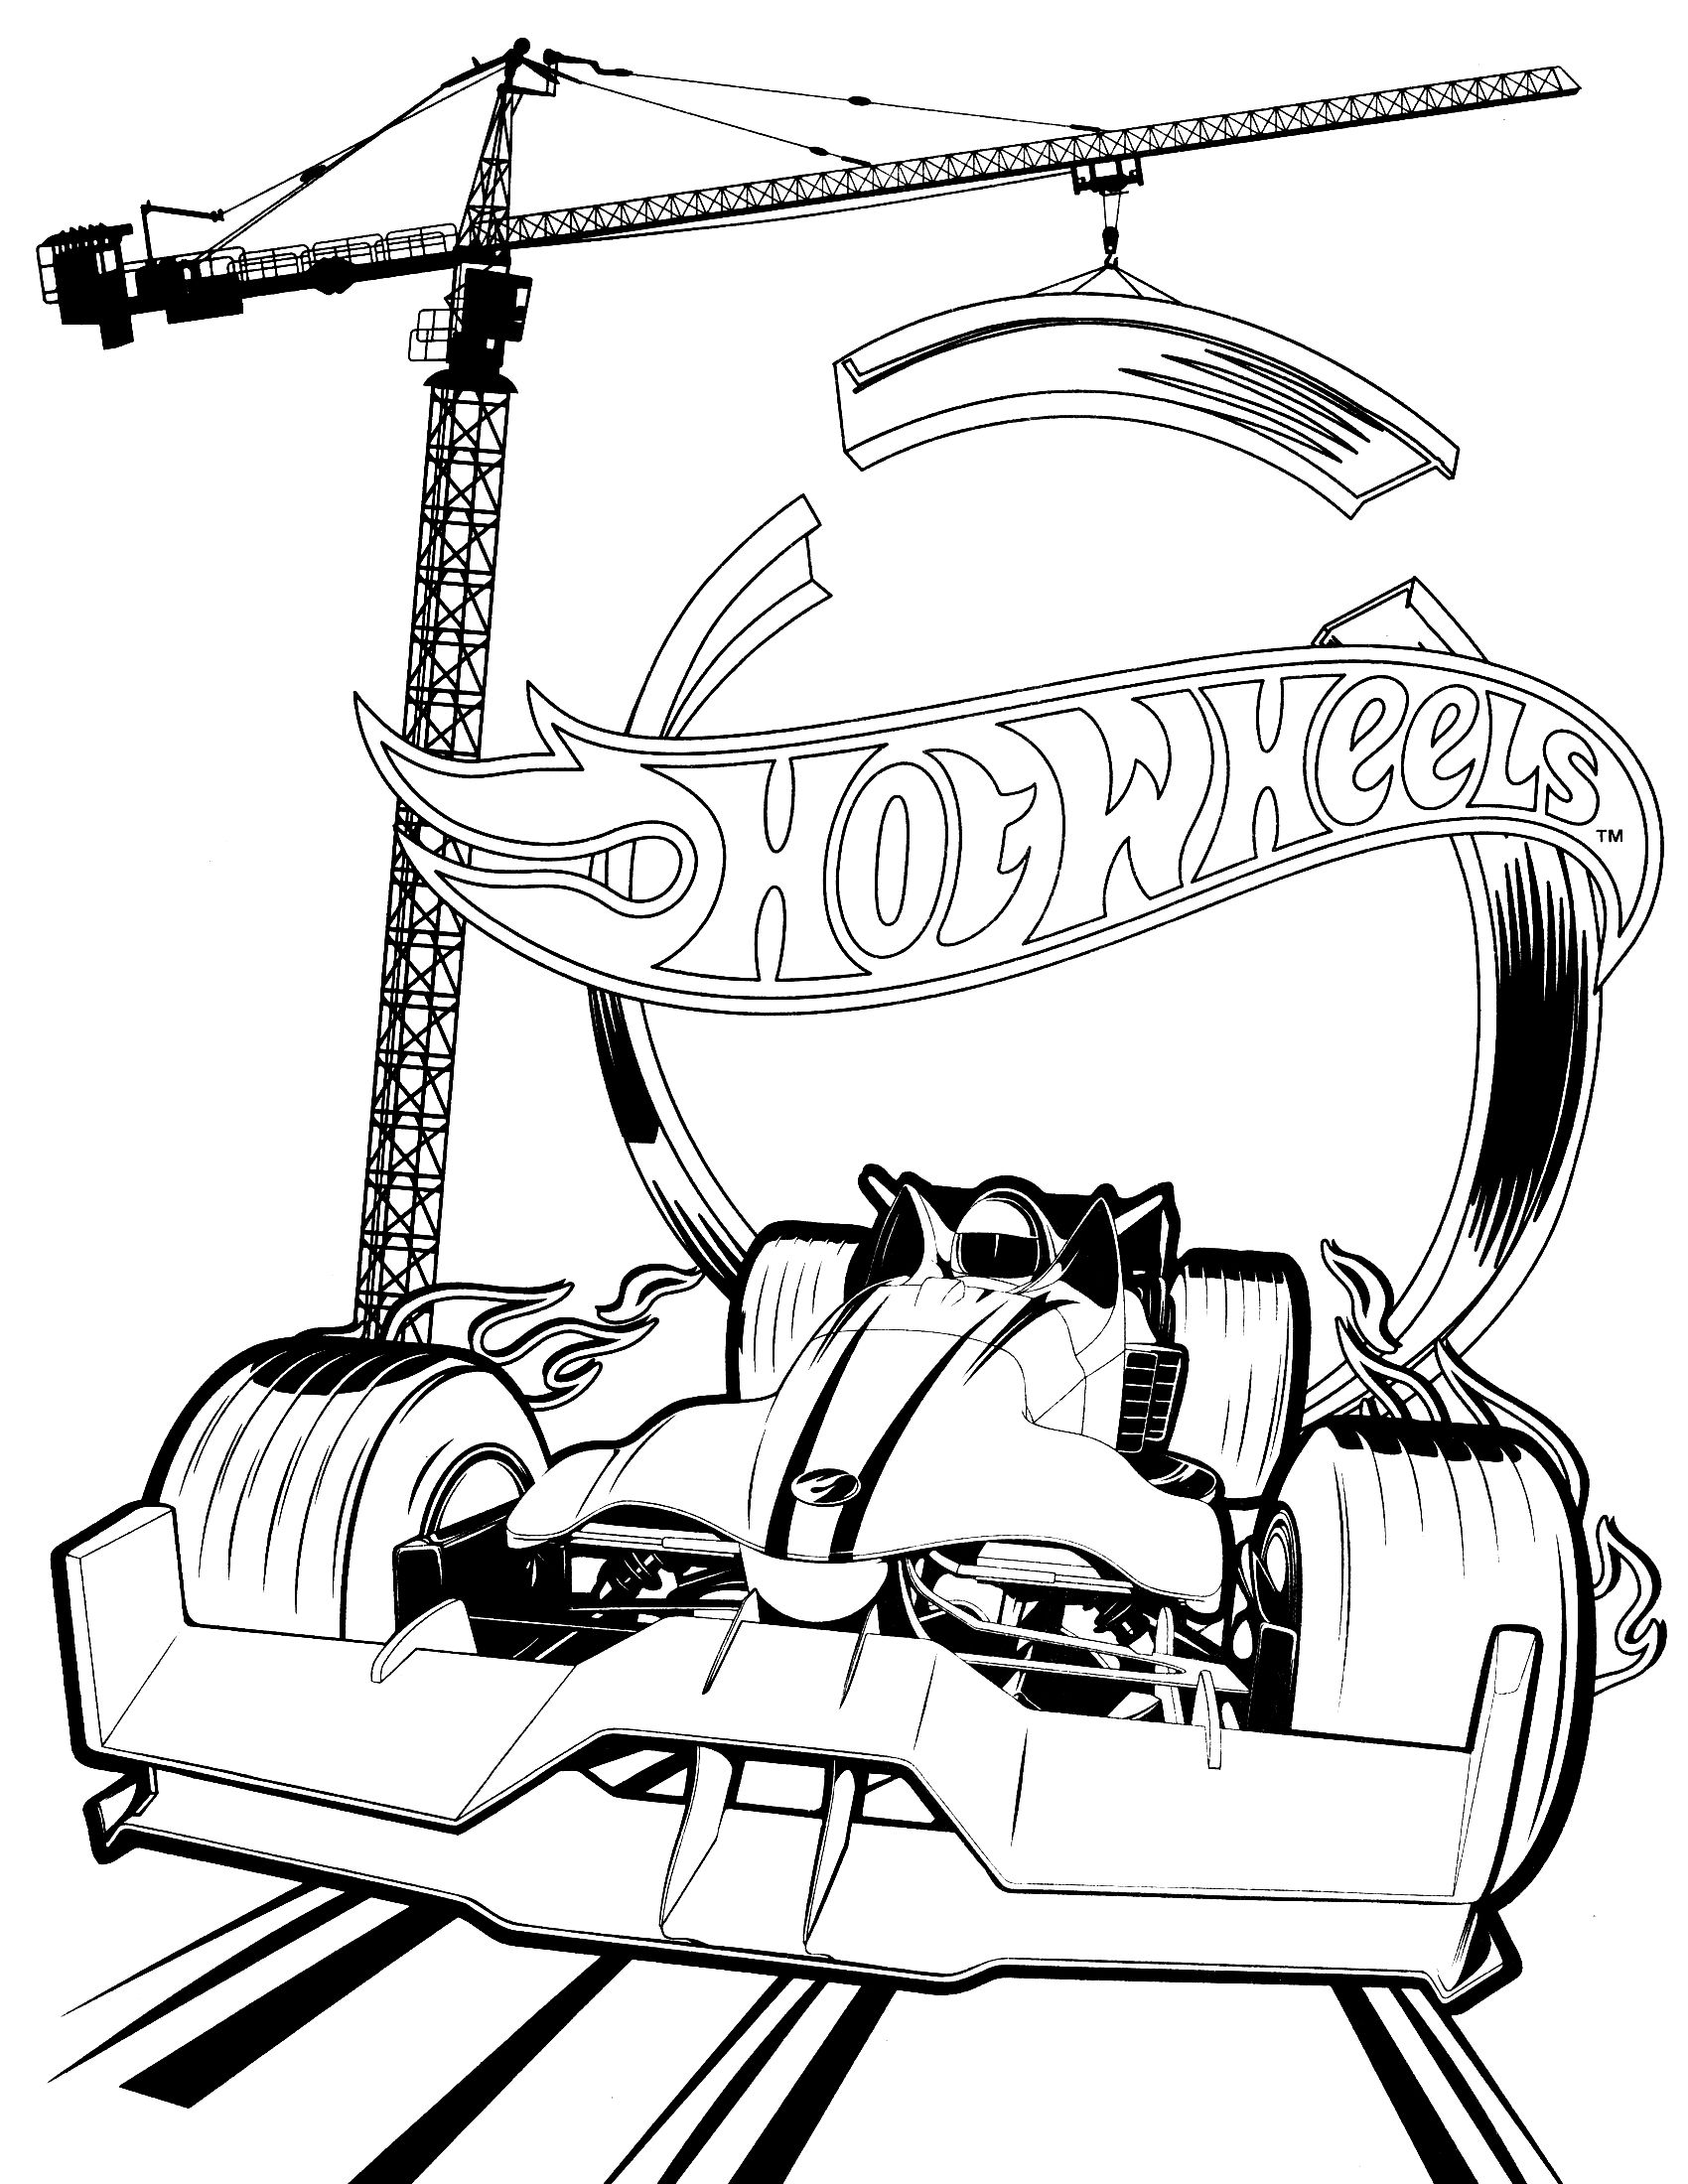 Hot Wheels Voiture Coloriage | 30000 ++ collections de ...